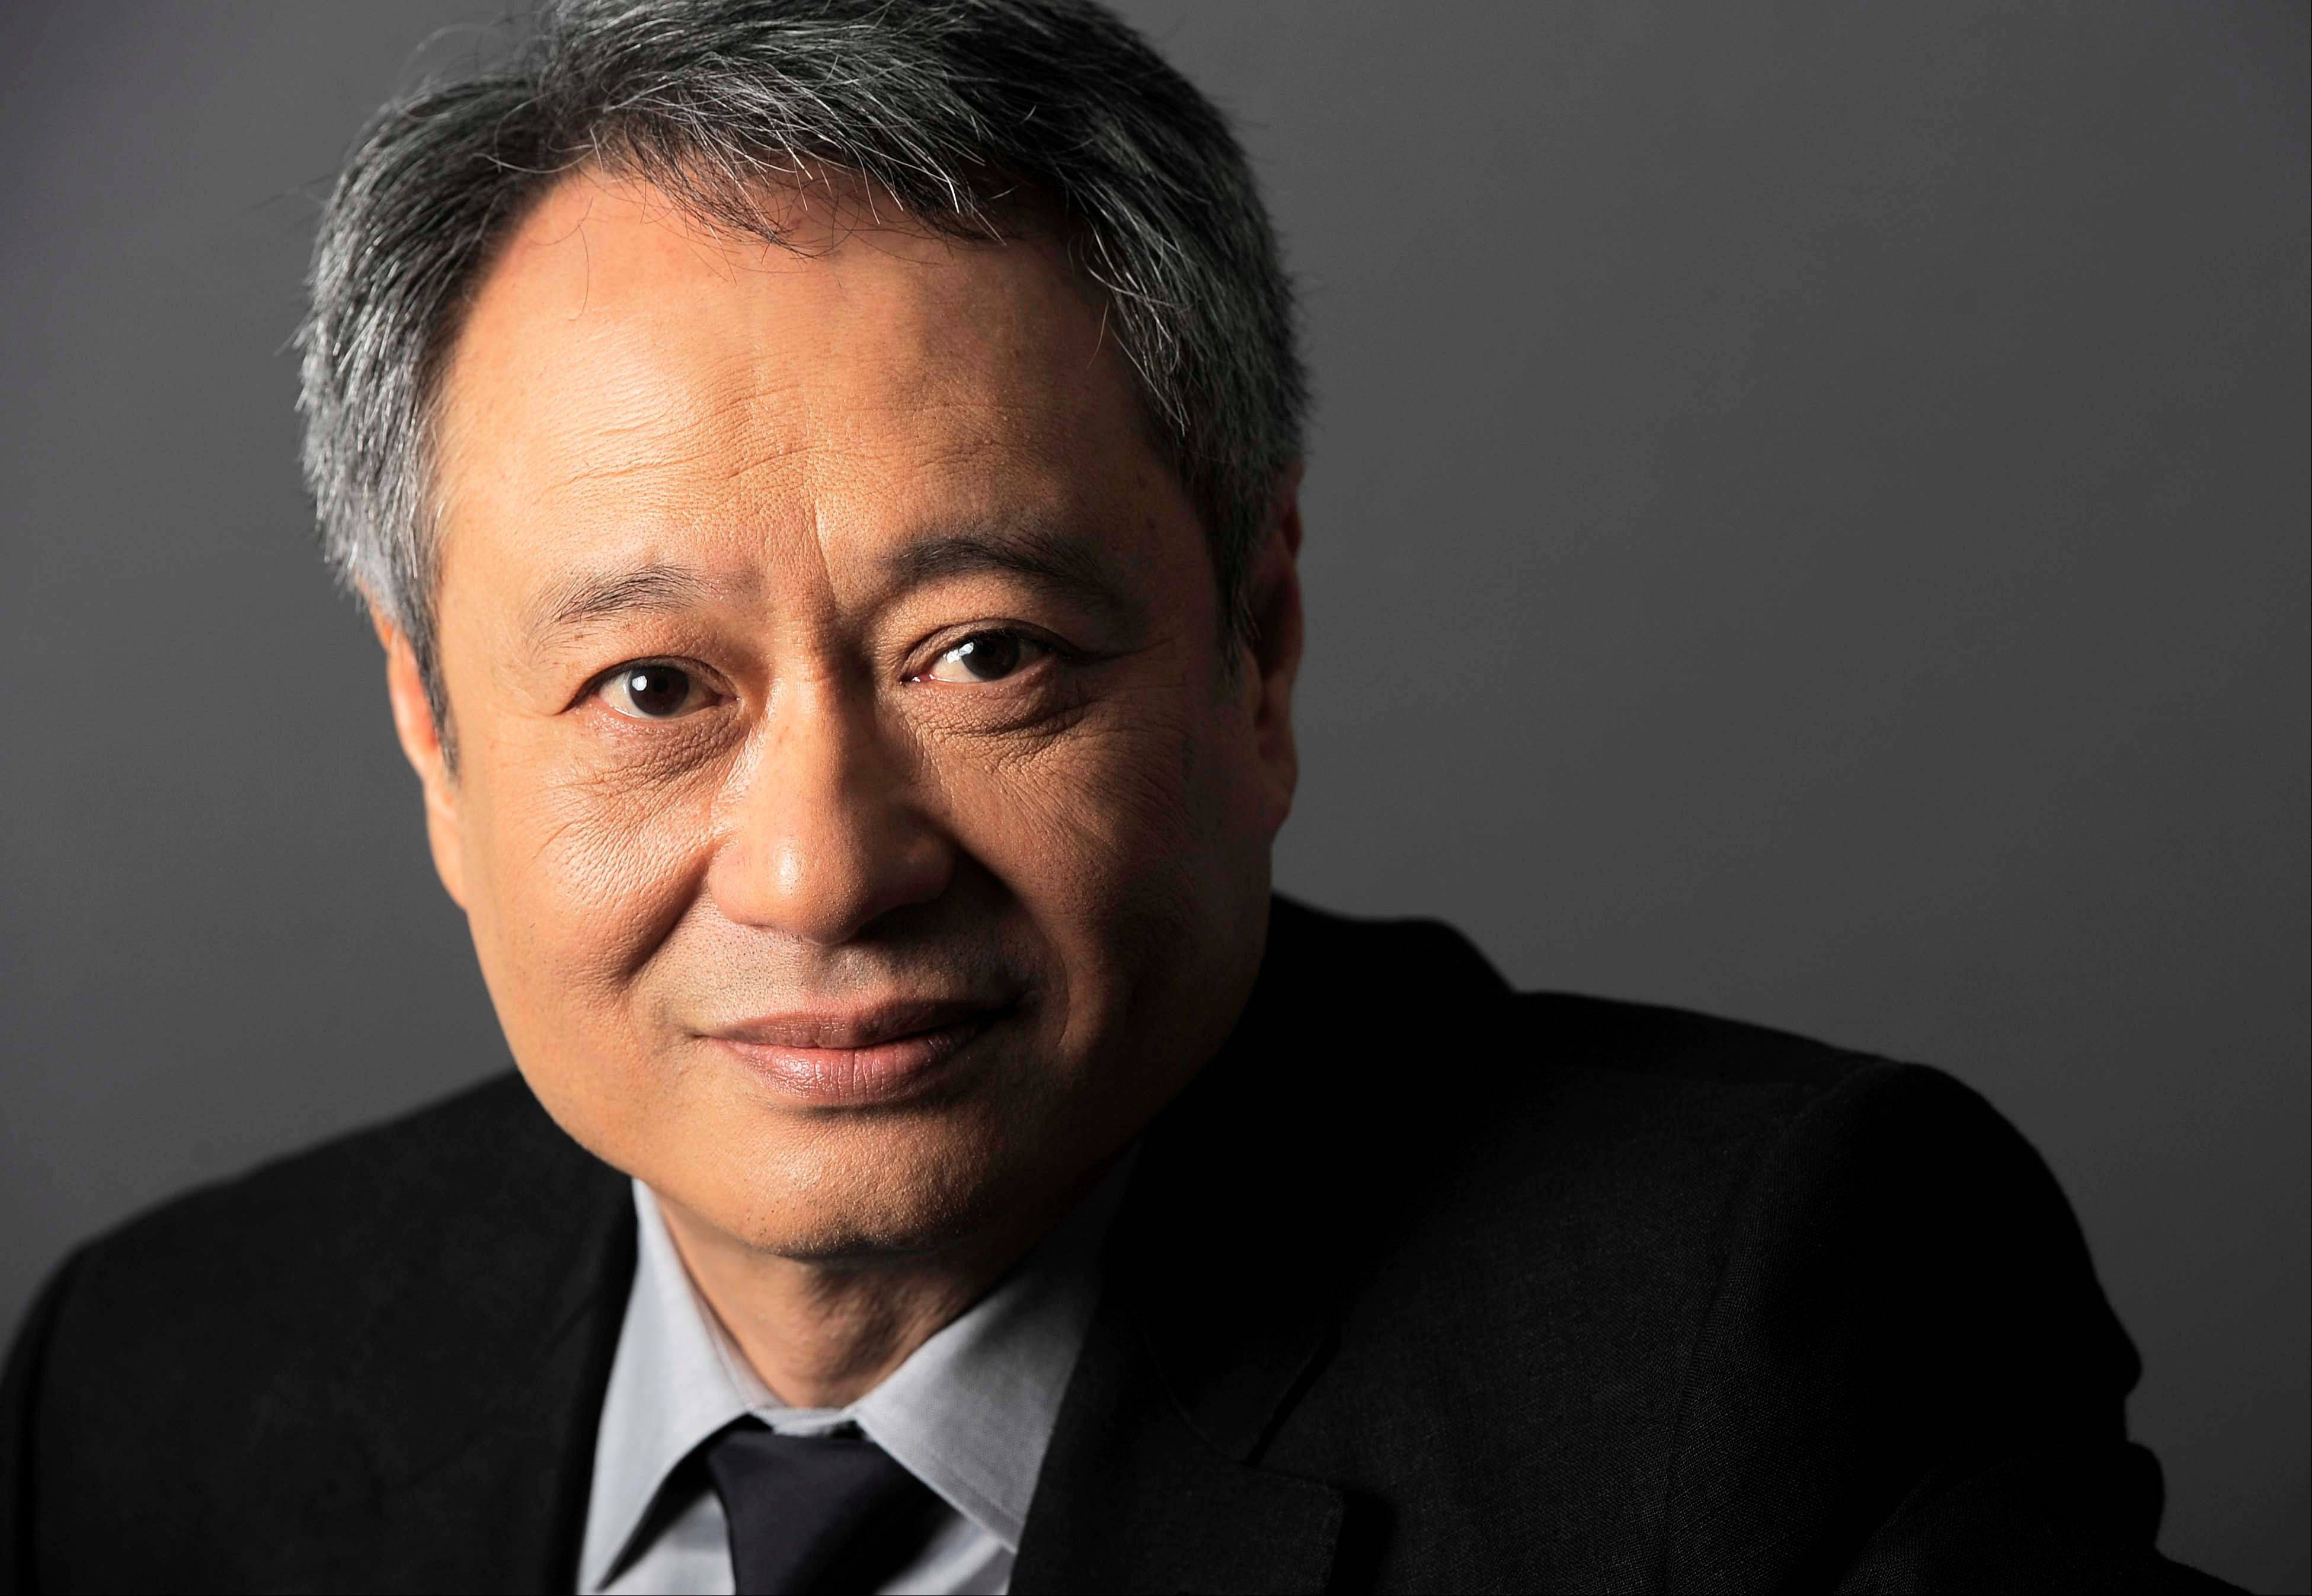 Ang Lee poses at CinemaCon 2012, the official convention of the National Association of Theater Owners in Las Vegas.